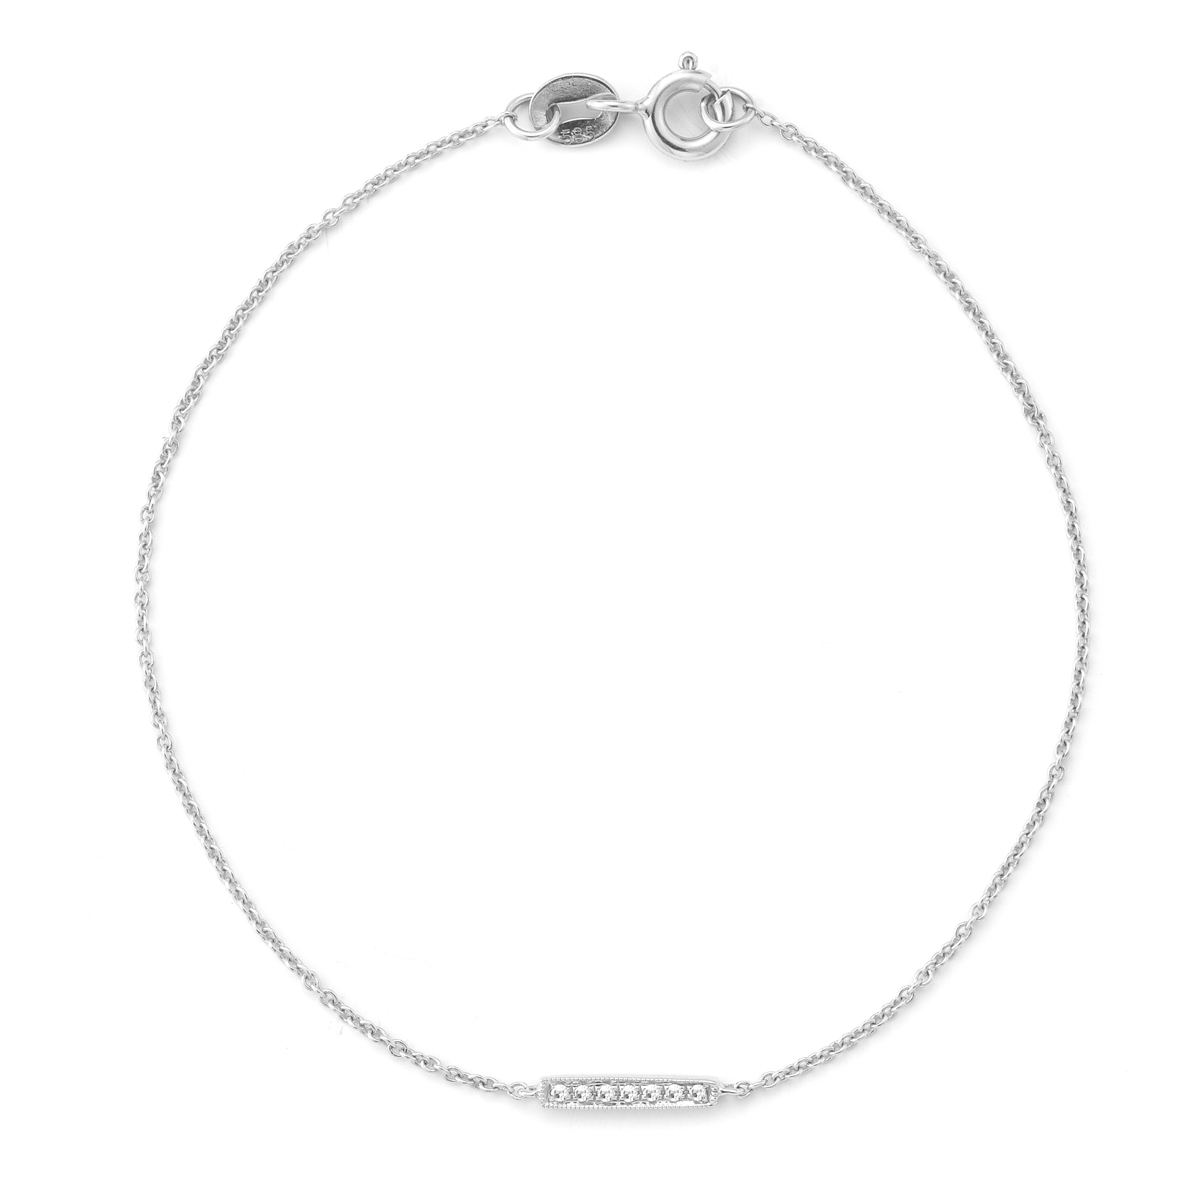 sylvie rose single bar bracelet